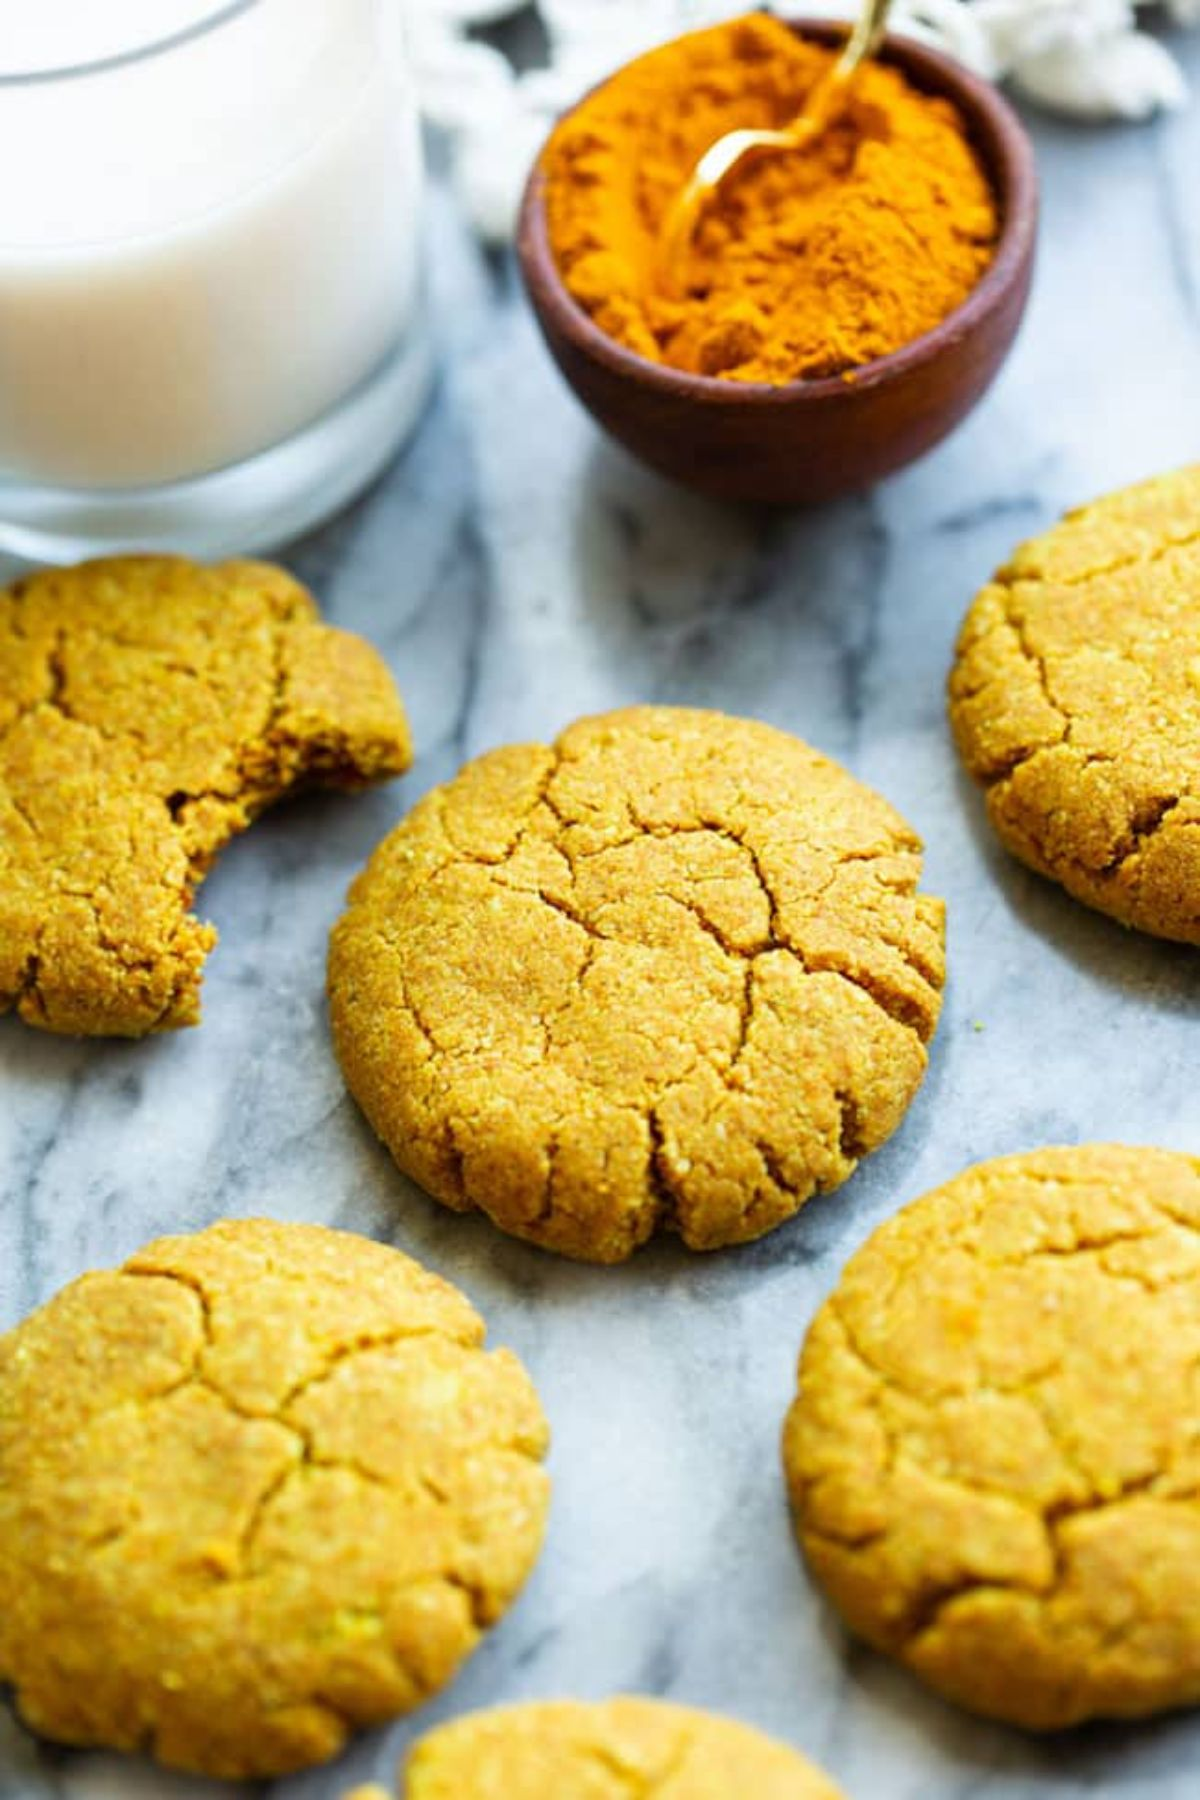 5 golden almond biscuits, one with a bit taken out of it. Behind is a glass of milk and a small pot of spice